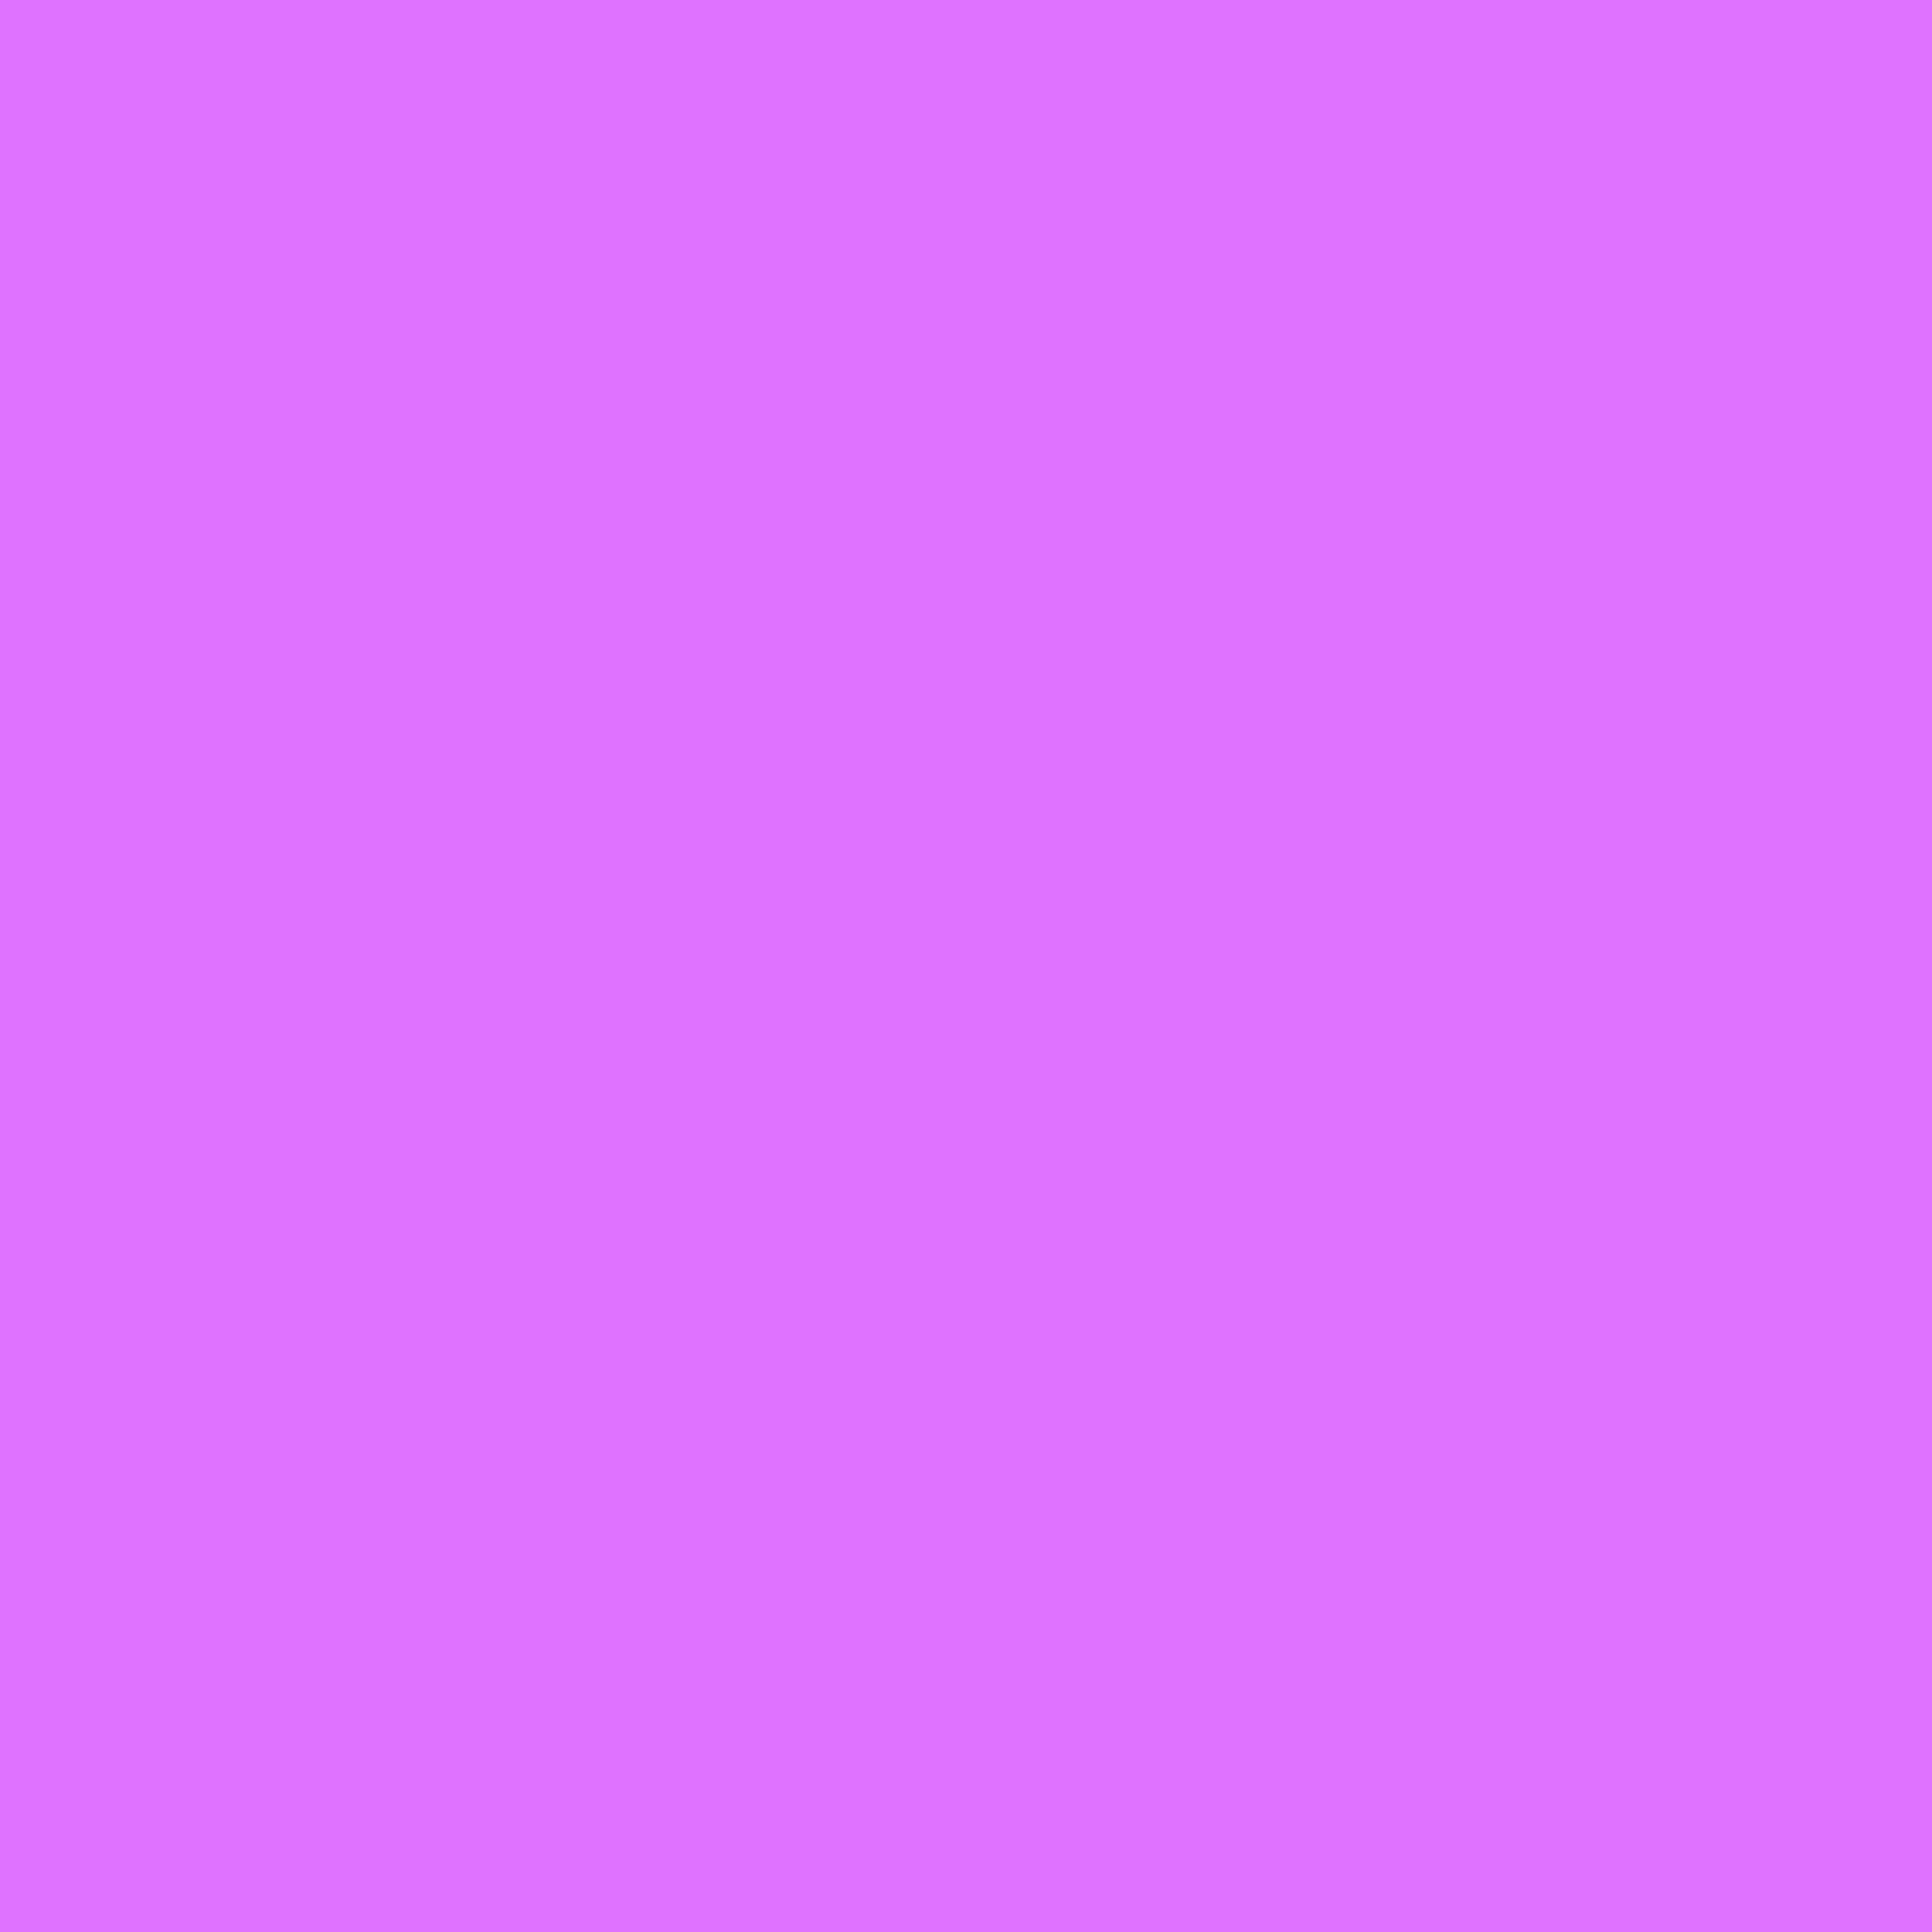 3600x3600 Heliotrope Solid Color Background